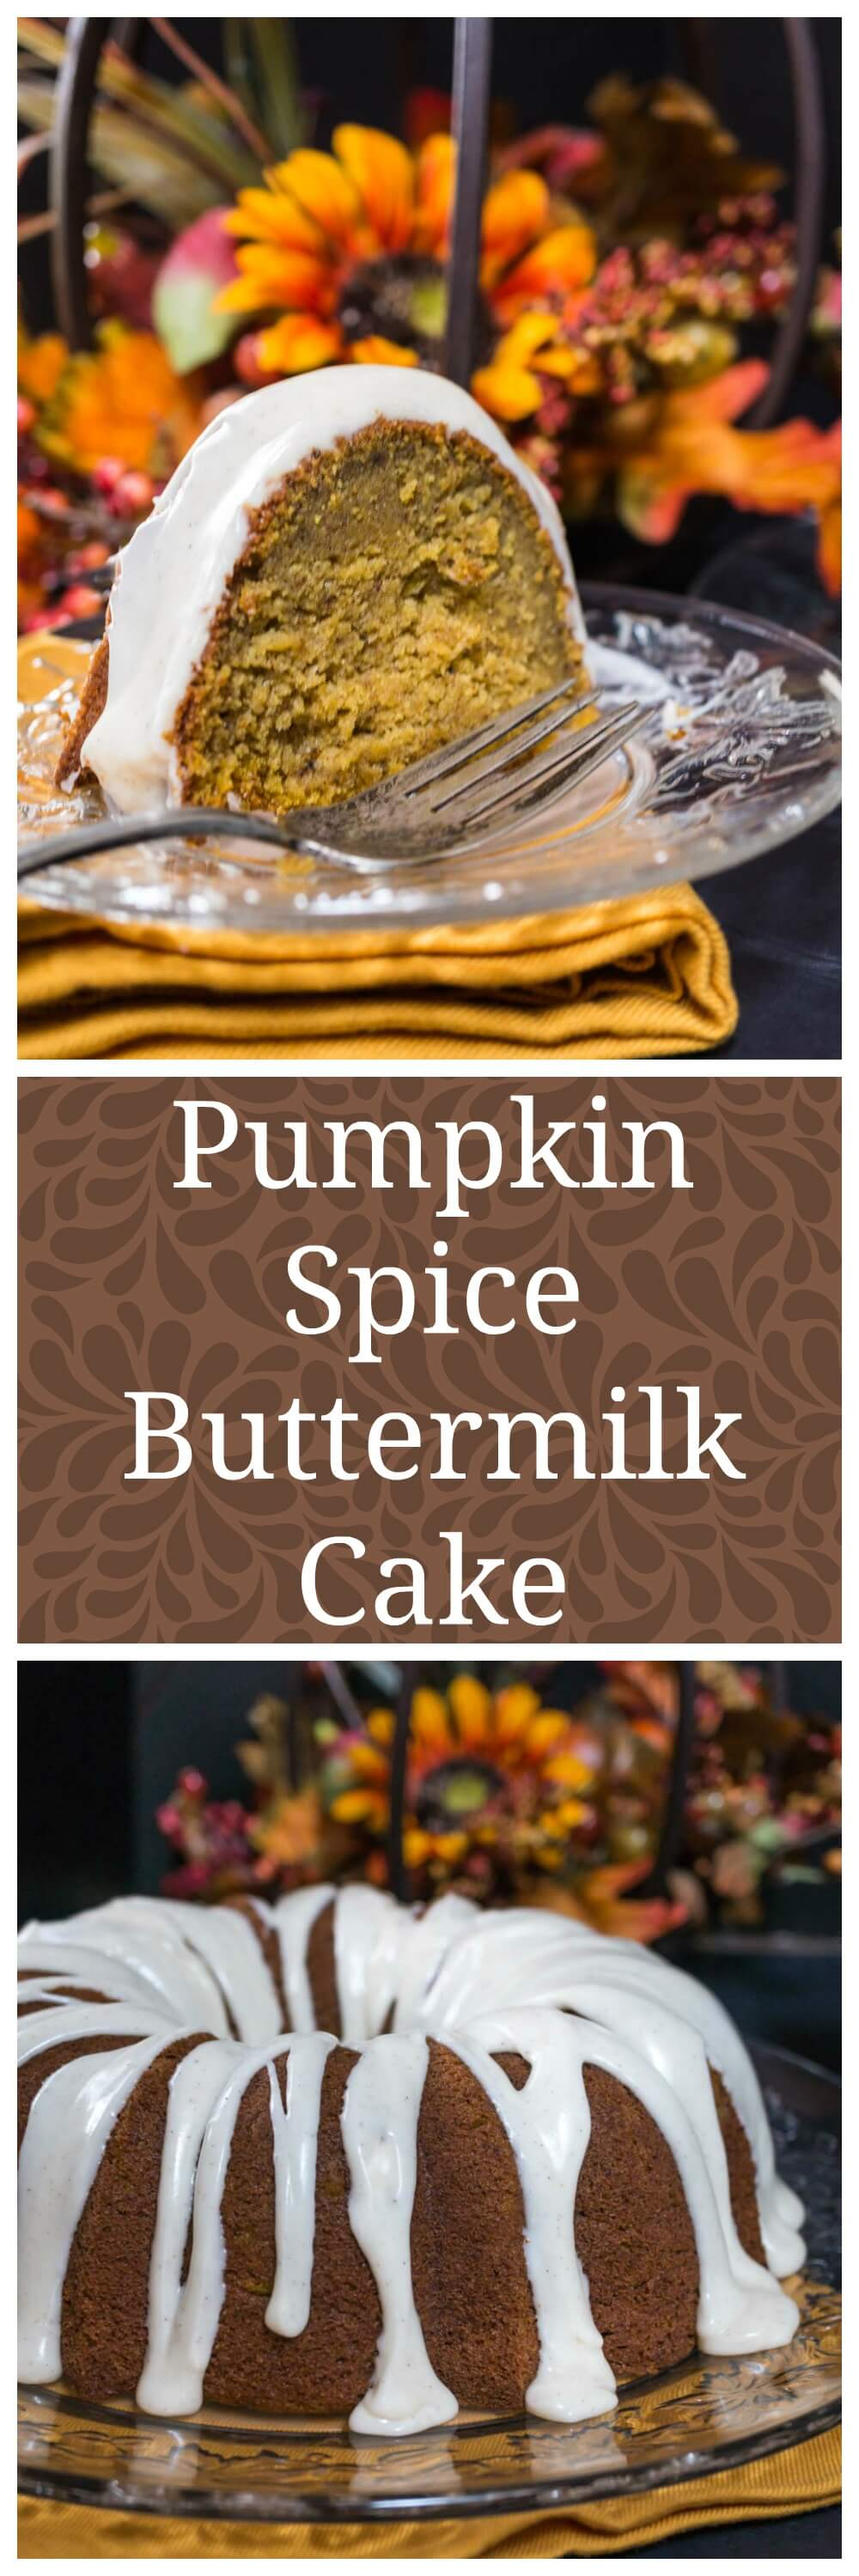 Pumpkin Spice Buttermilk Cake with a warm Cinnamon Cream Cheese icing ...